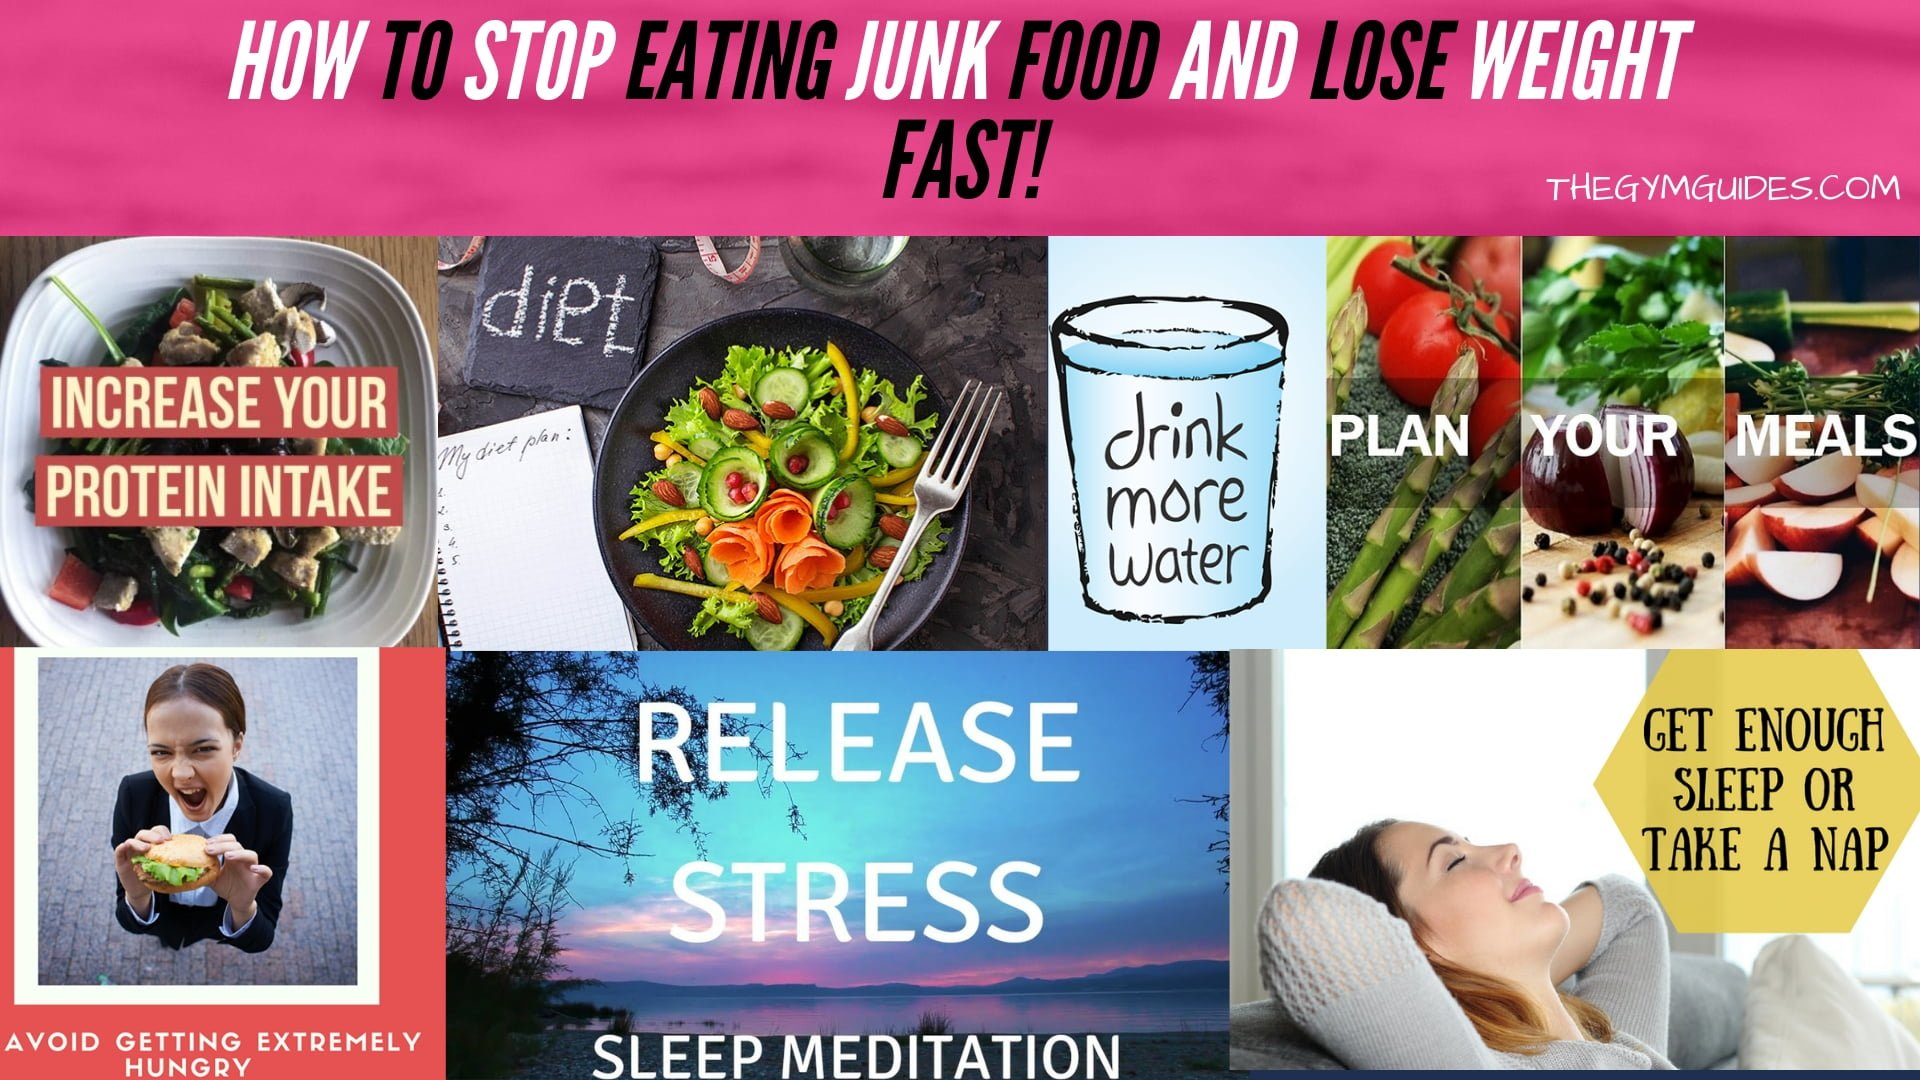 How to Stop Eating Junk Food and Lose Weight Fast